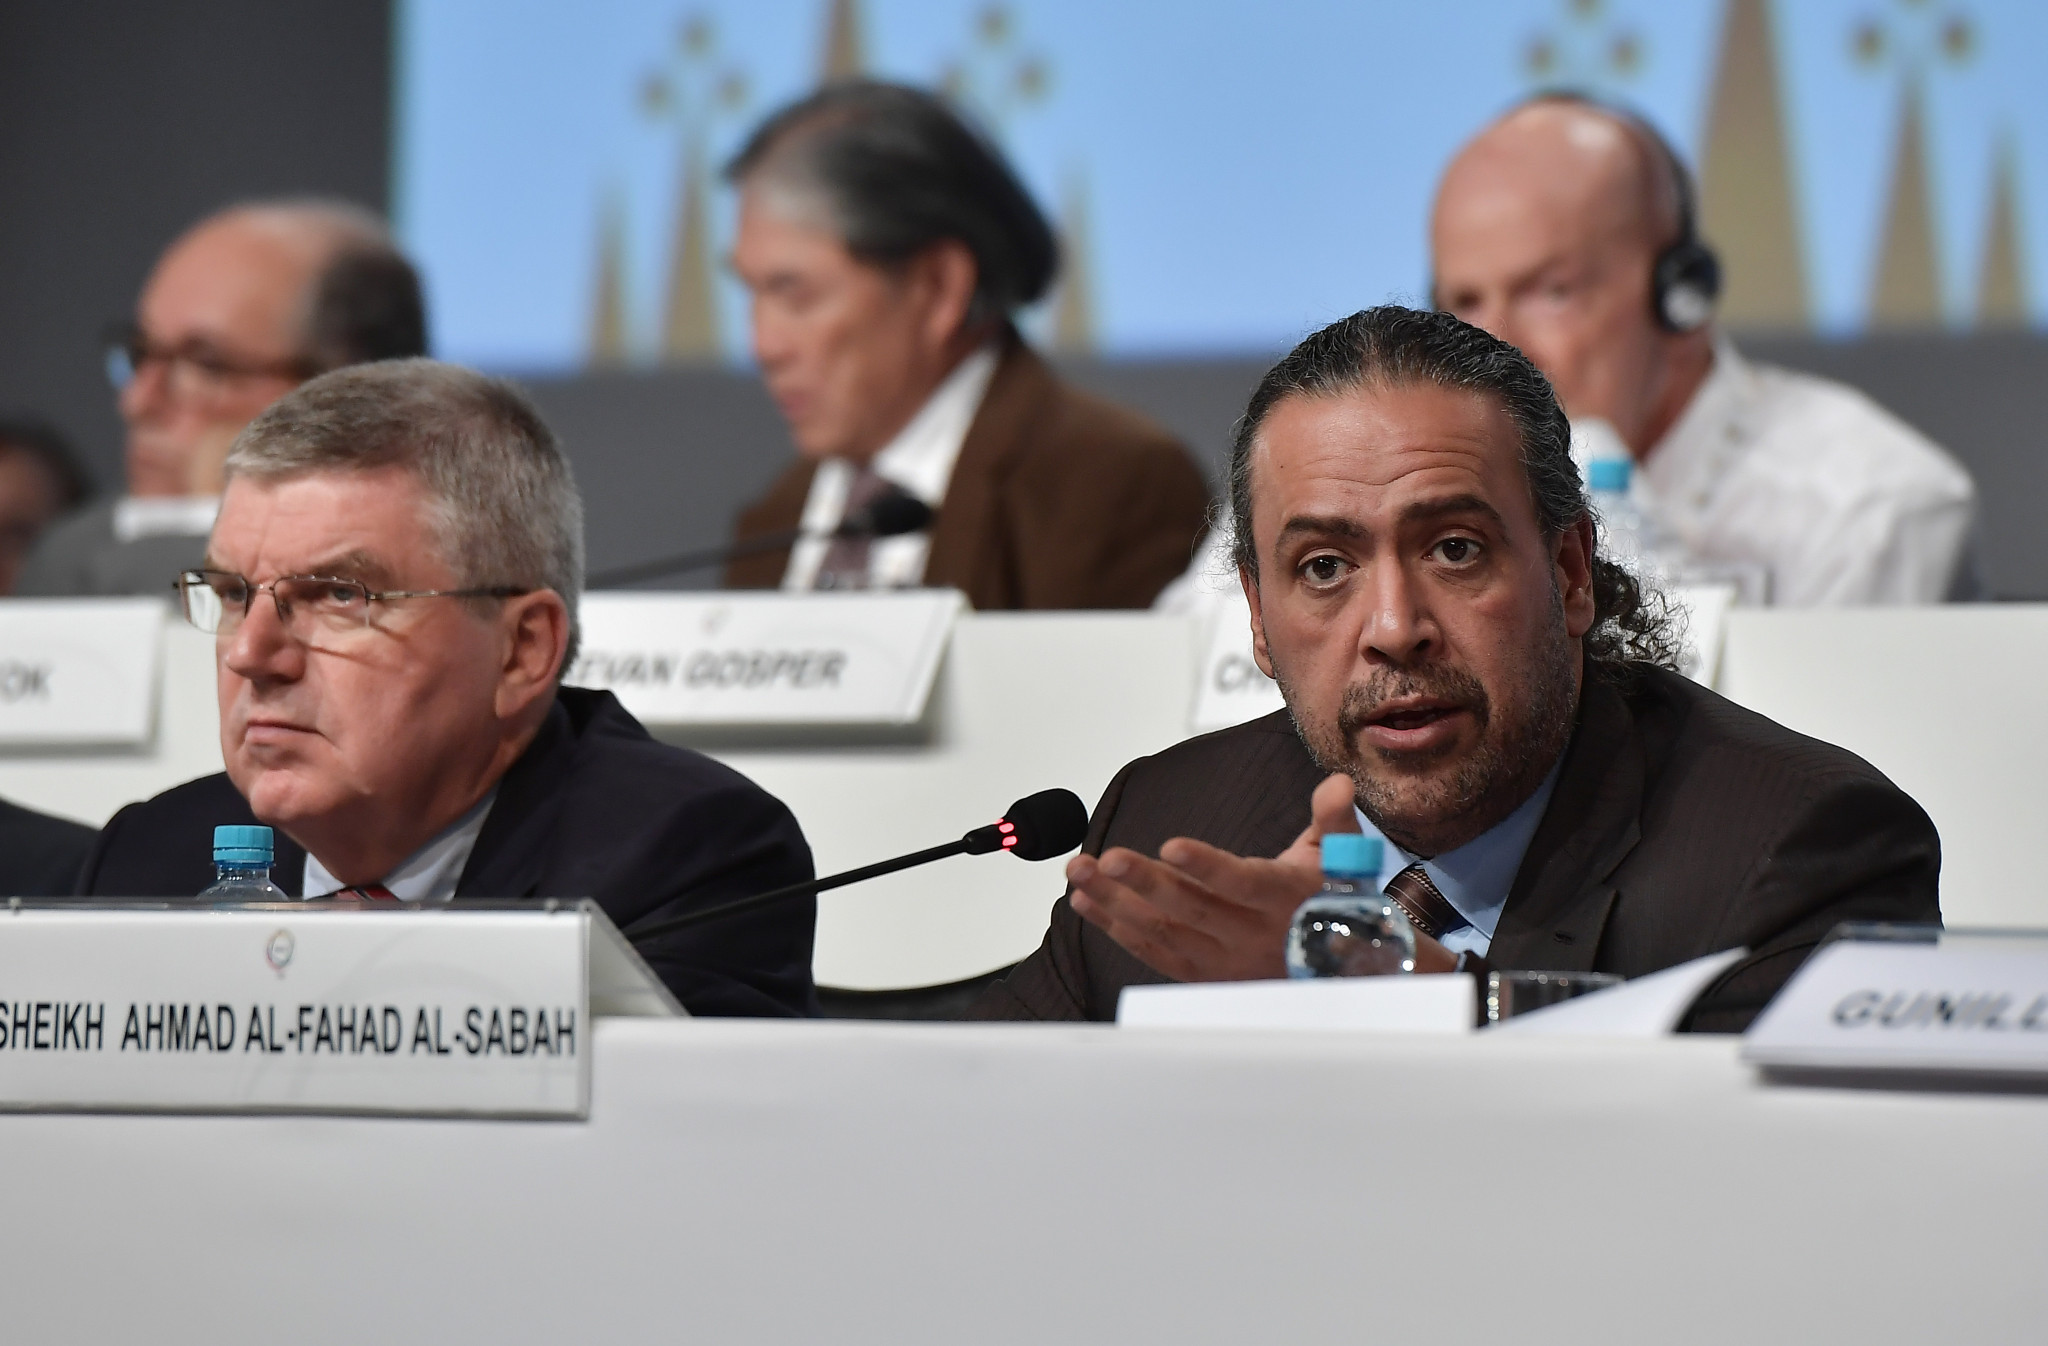 IOC President Thomas Bach has asked Sheikh Ahmad to stand aside as head of ANOC ©Getty Images